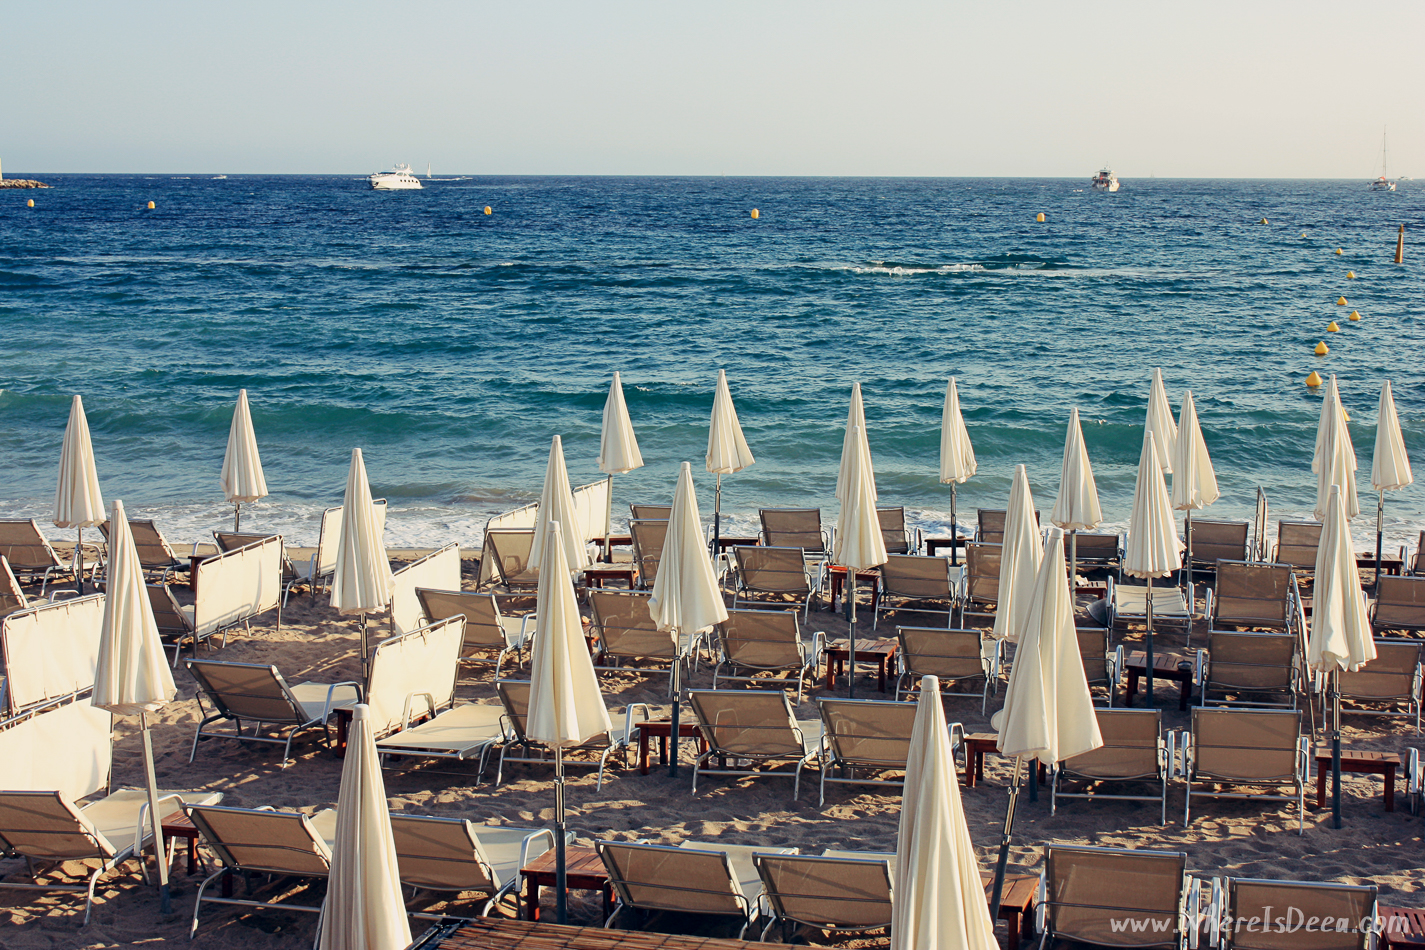 A wealthy nest called Cannes